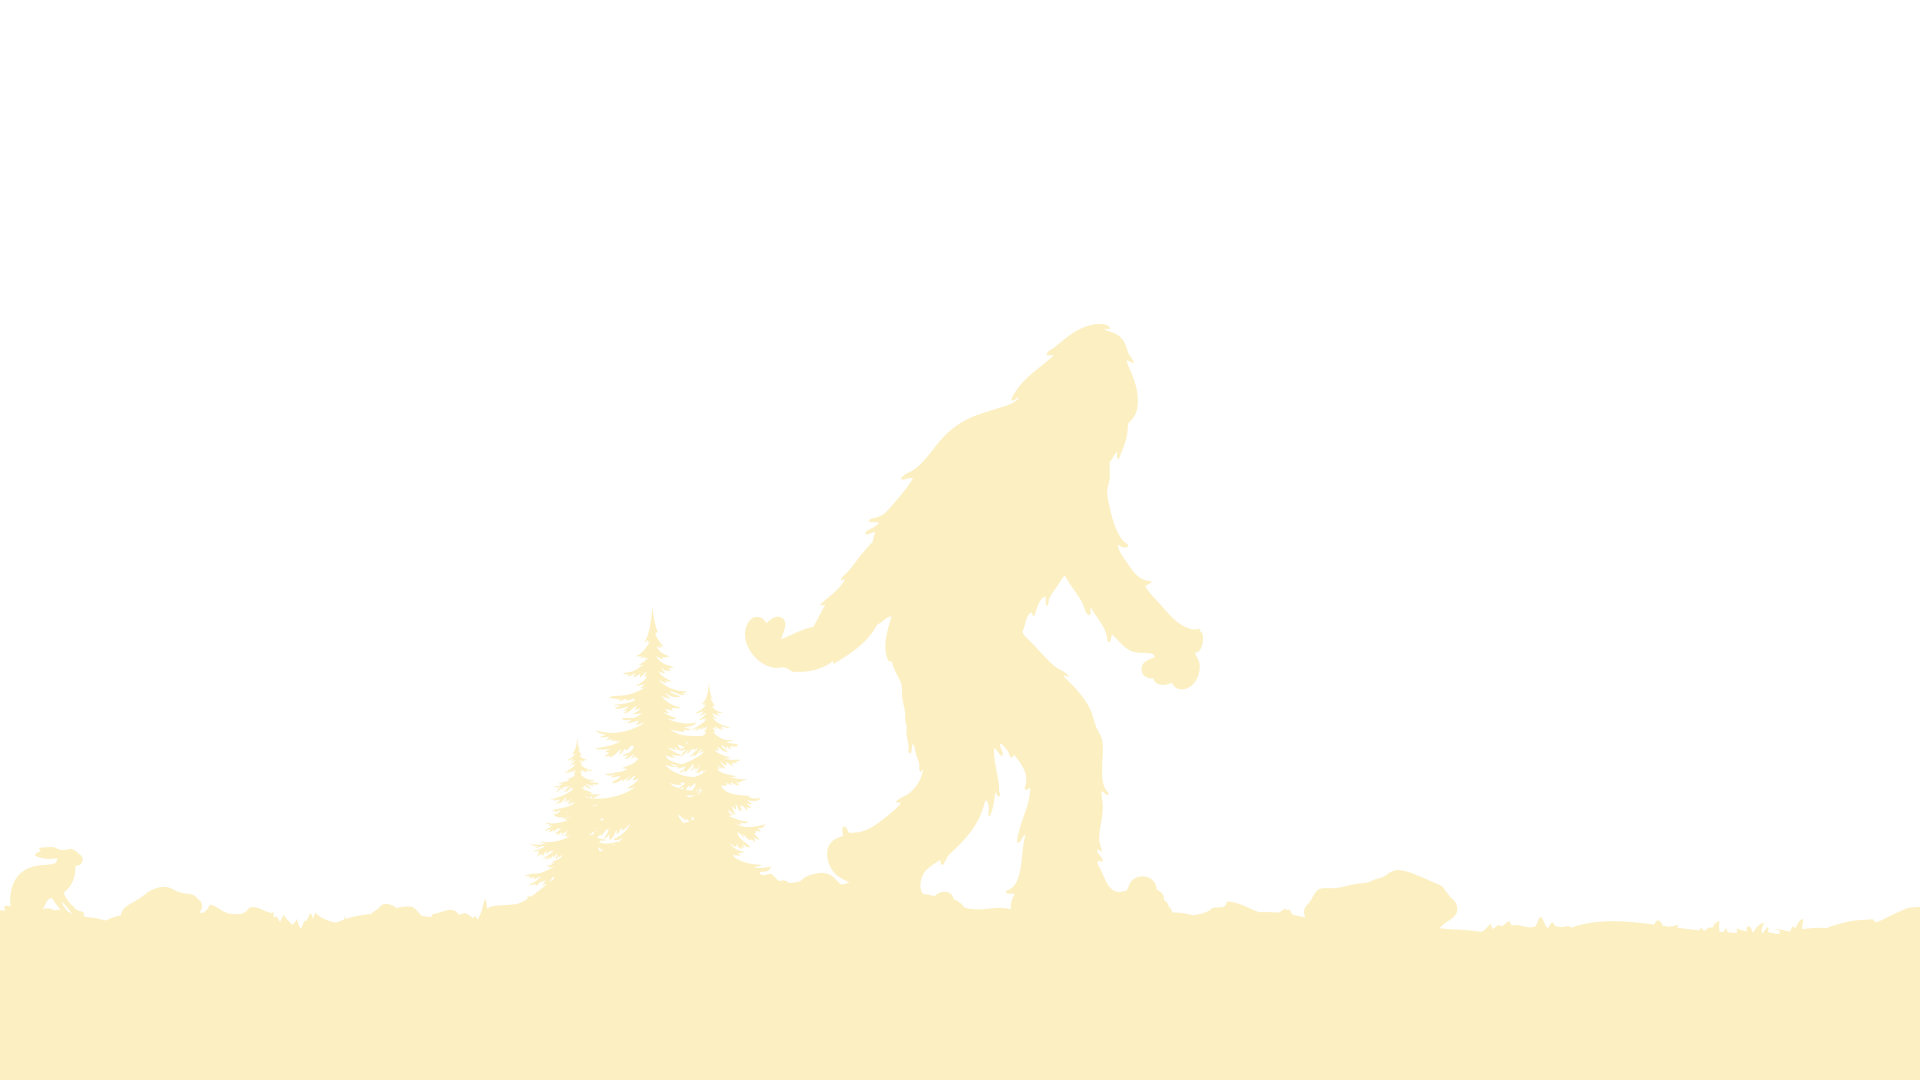 clipart royalty free stock Yeti Silhouette at GetDrawings